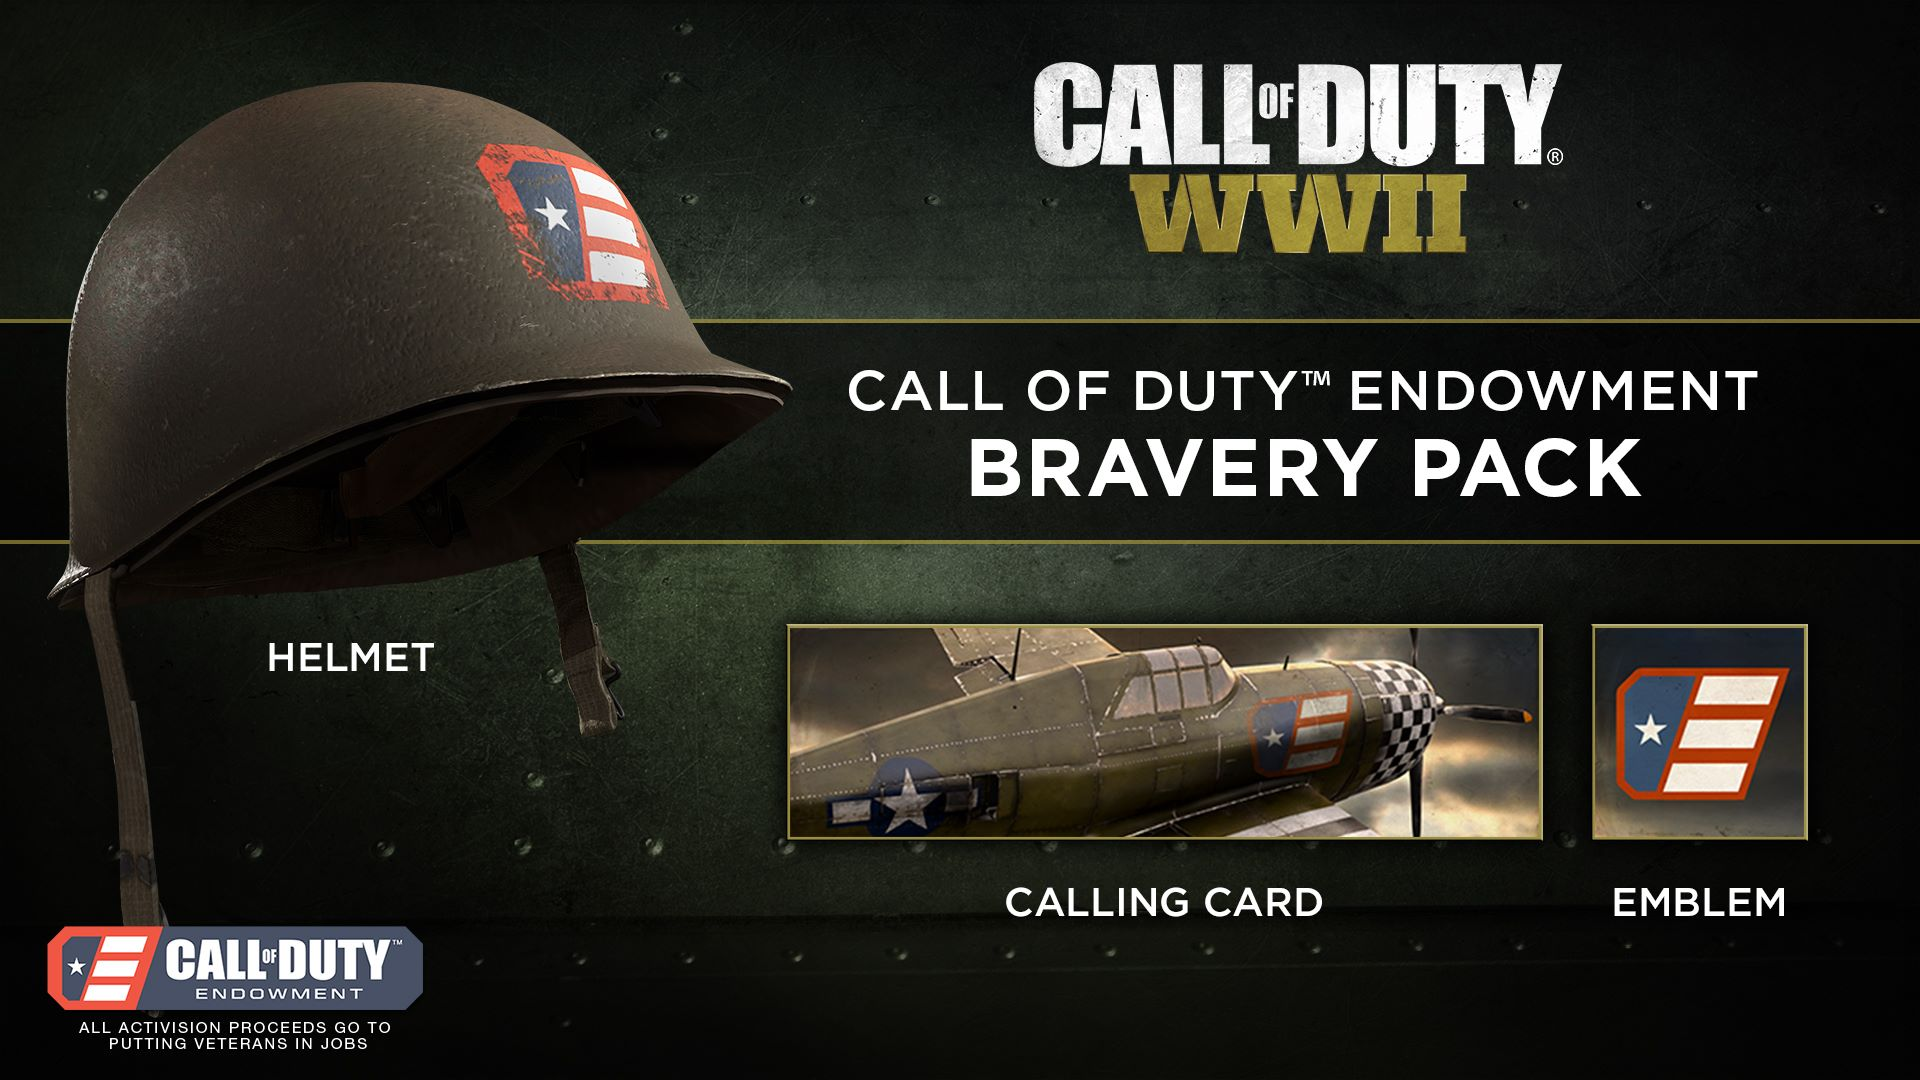 Call Of Duty Endowment Awards $30,000 To Major UK Charities Bravery Pack